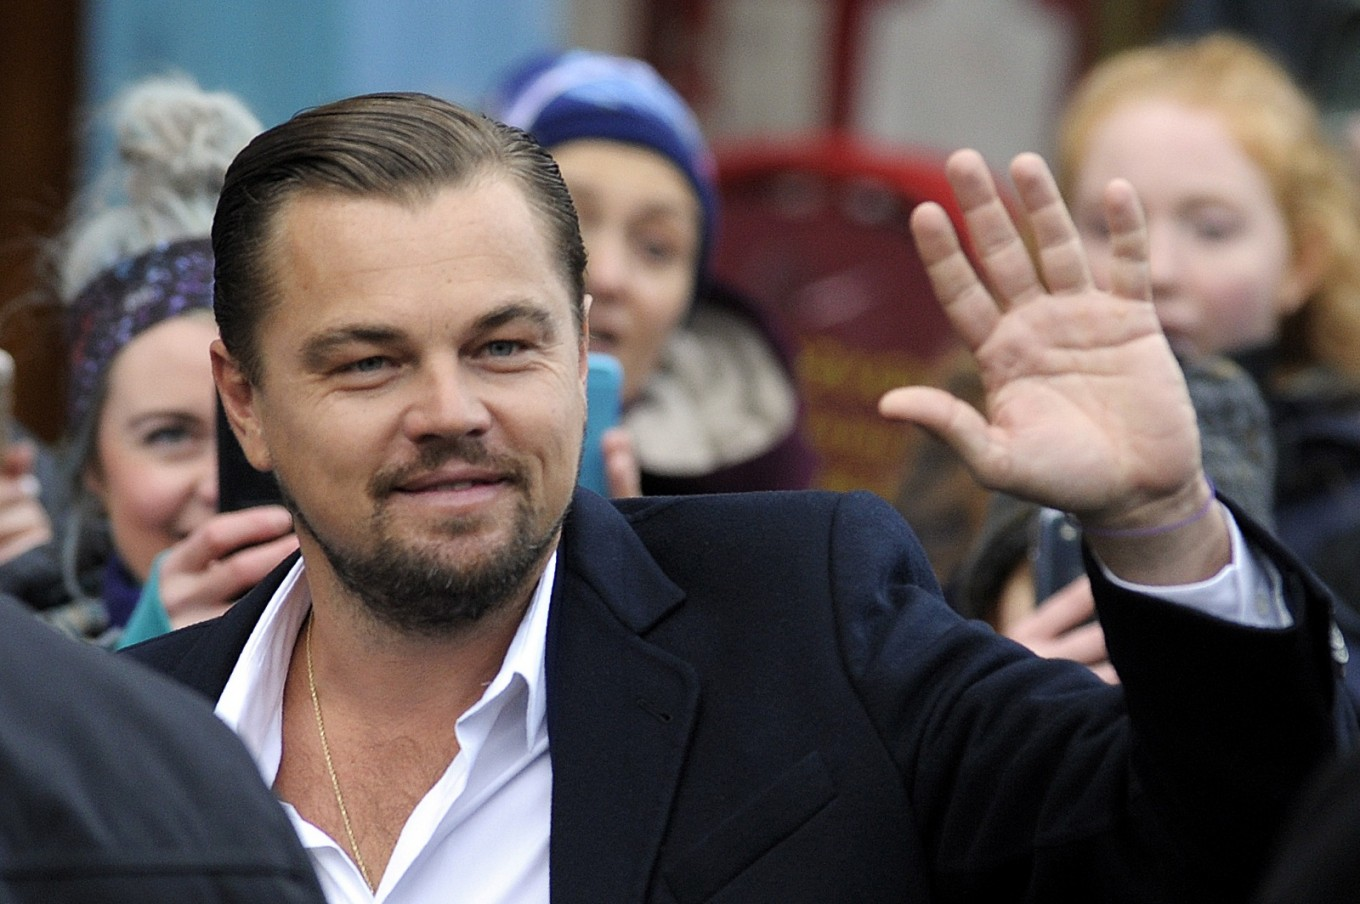 Leonardo DiCaprio shows support for Sumatran orangutan conservation program